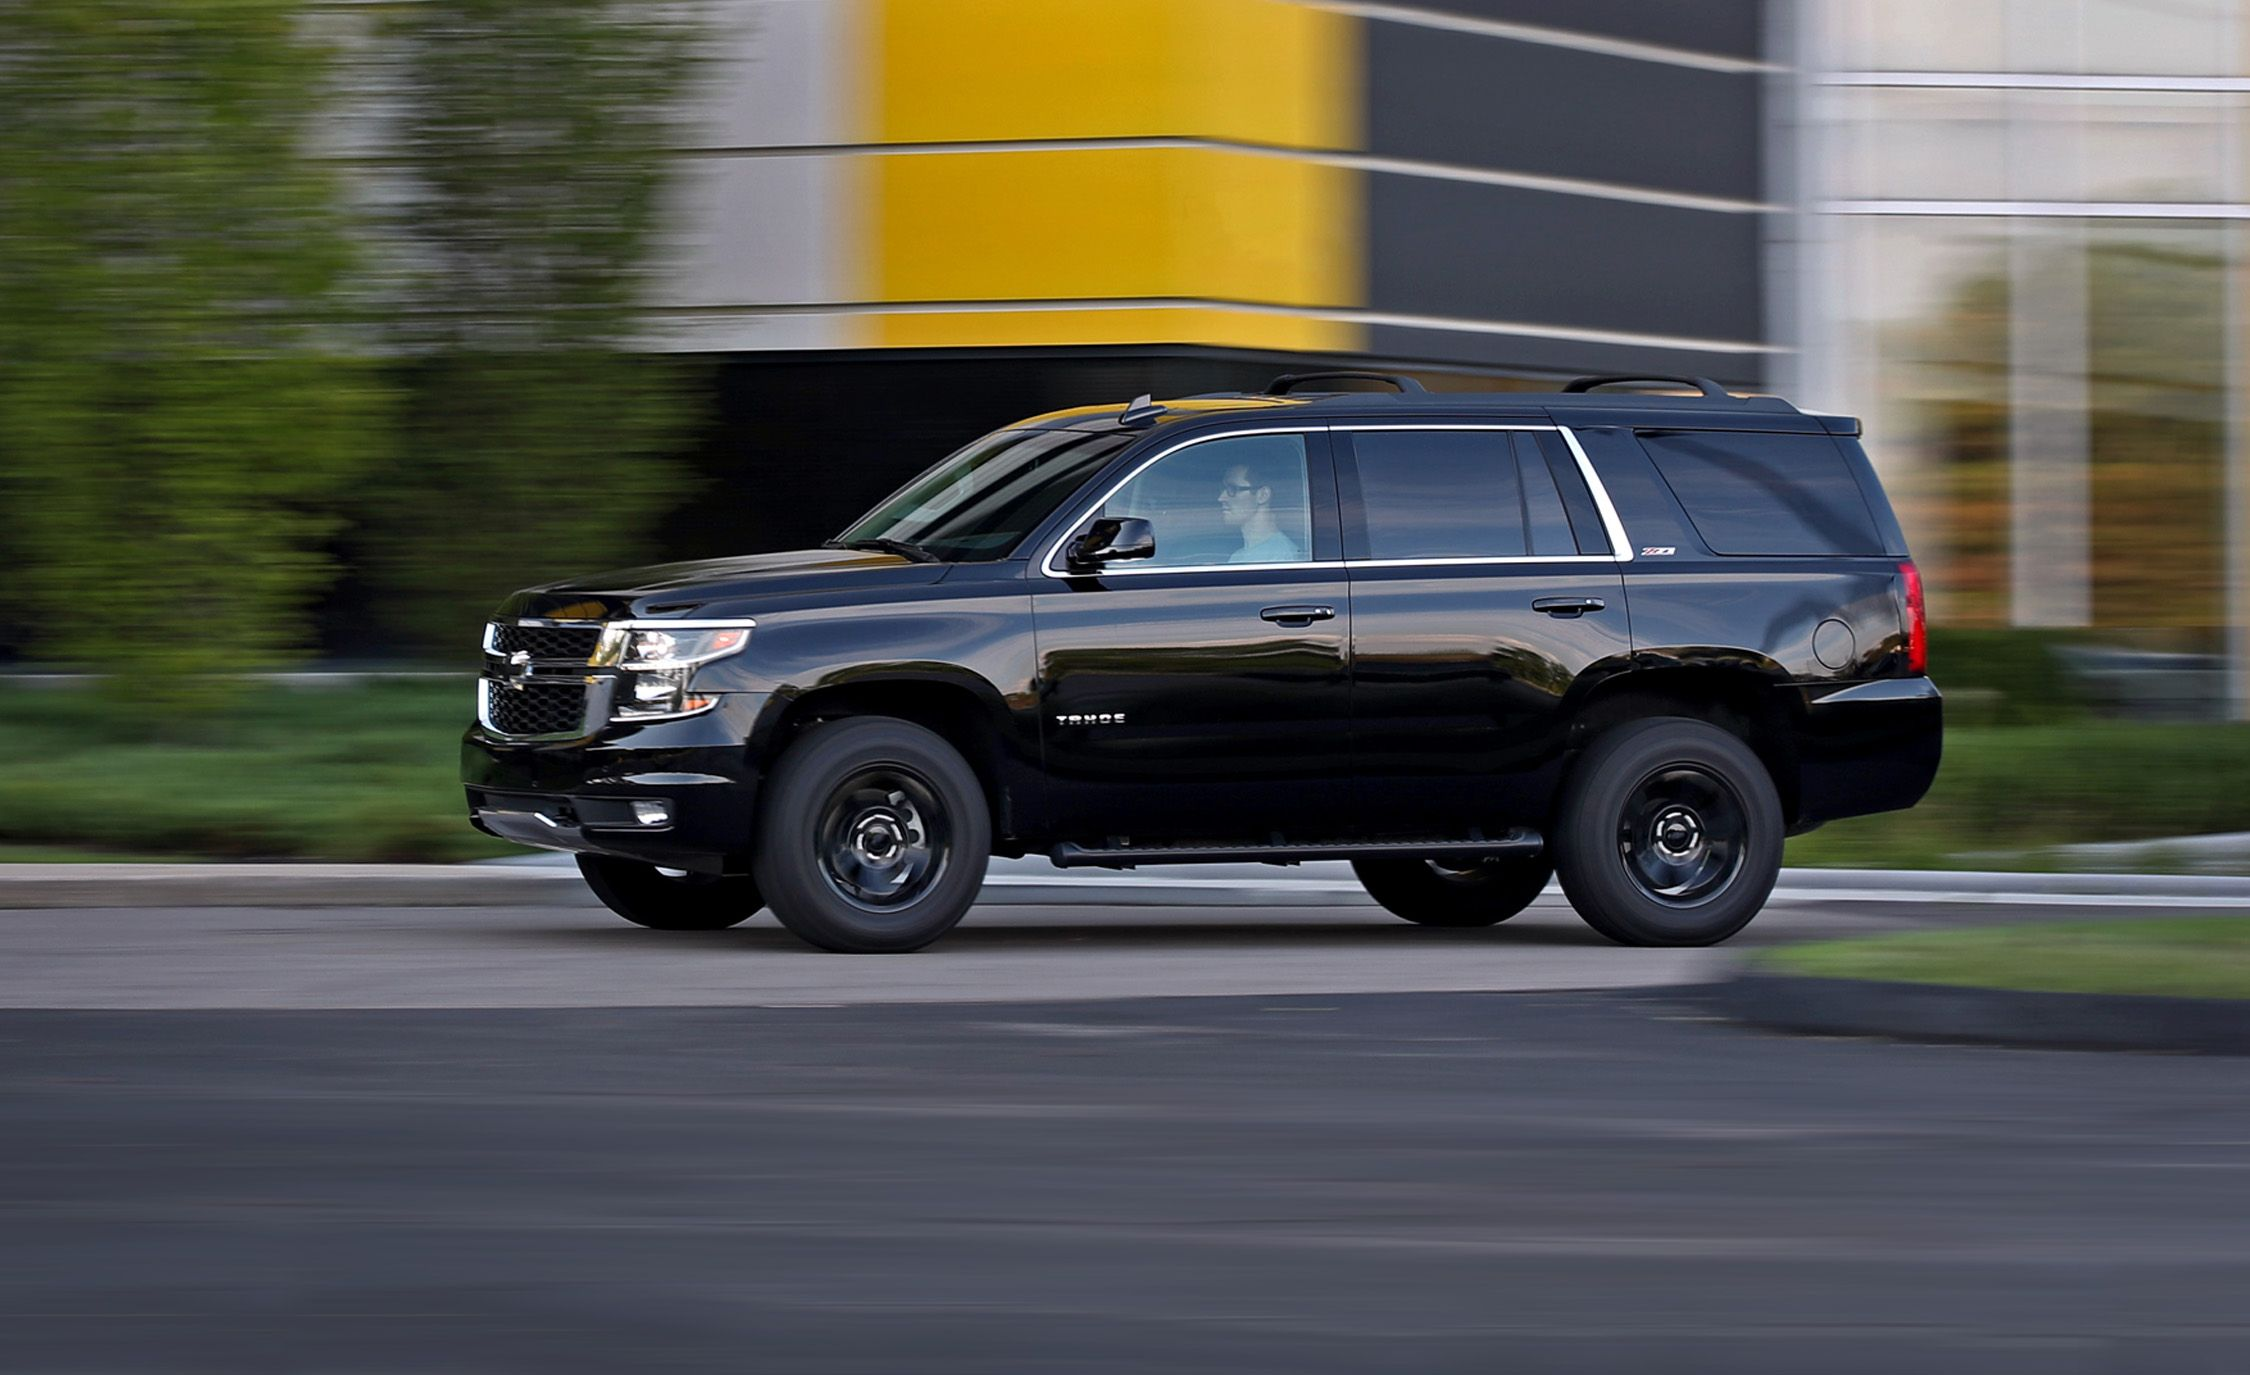 2018 Chevrolet Tahoe 4wd Review: 2017 Chevrolet Tahoe Z71 4WD Test